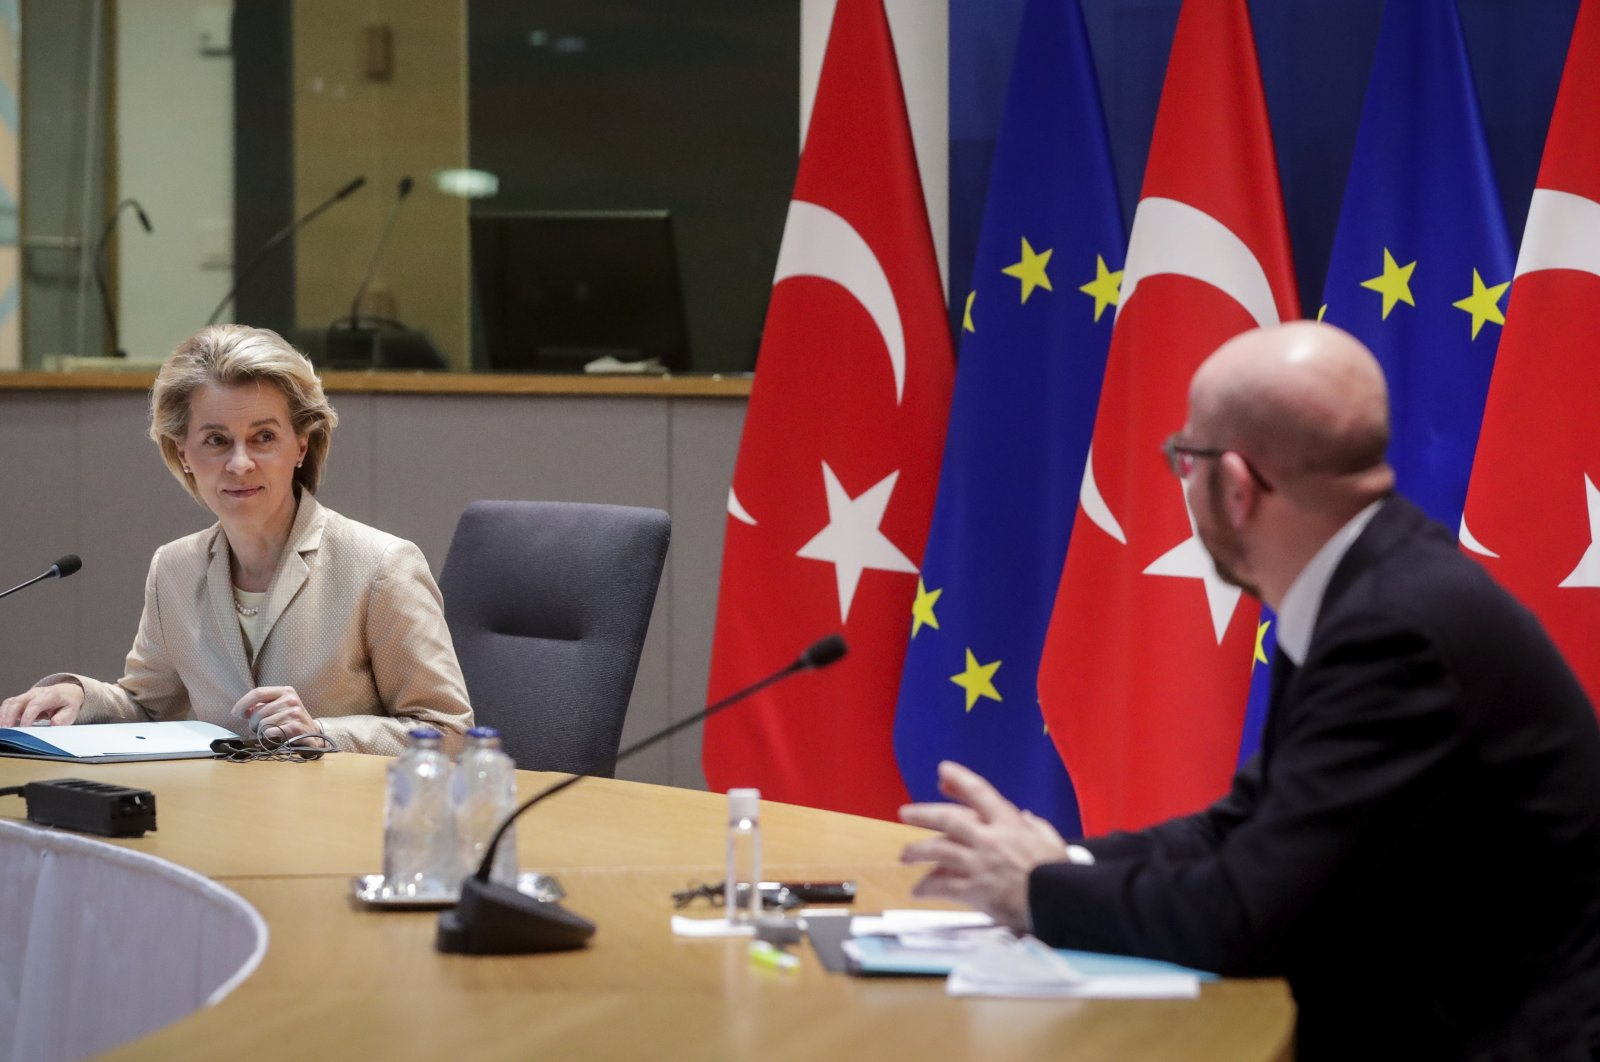 European Commission President Ursula von der Leyen (L) and European Council President Charles Michel participate in a videoconference meeting with Turkey's President Recep Tayyip Erdoğan at the European Council building in Brussels, Belgium, March 19, 2021. (Stephanie Lecocq, Pool via AP)